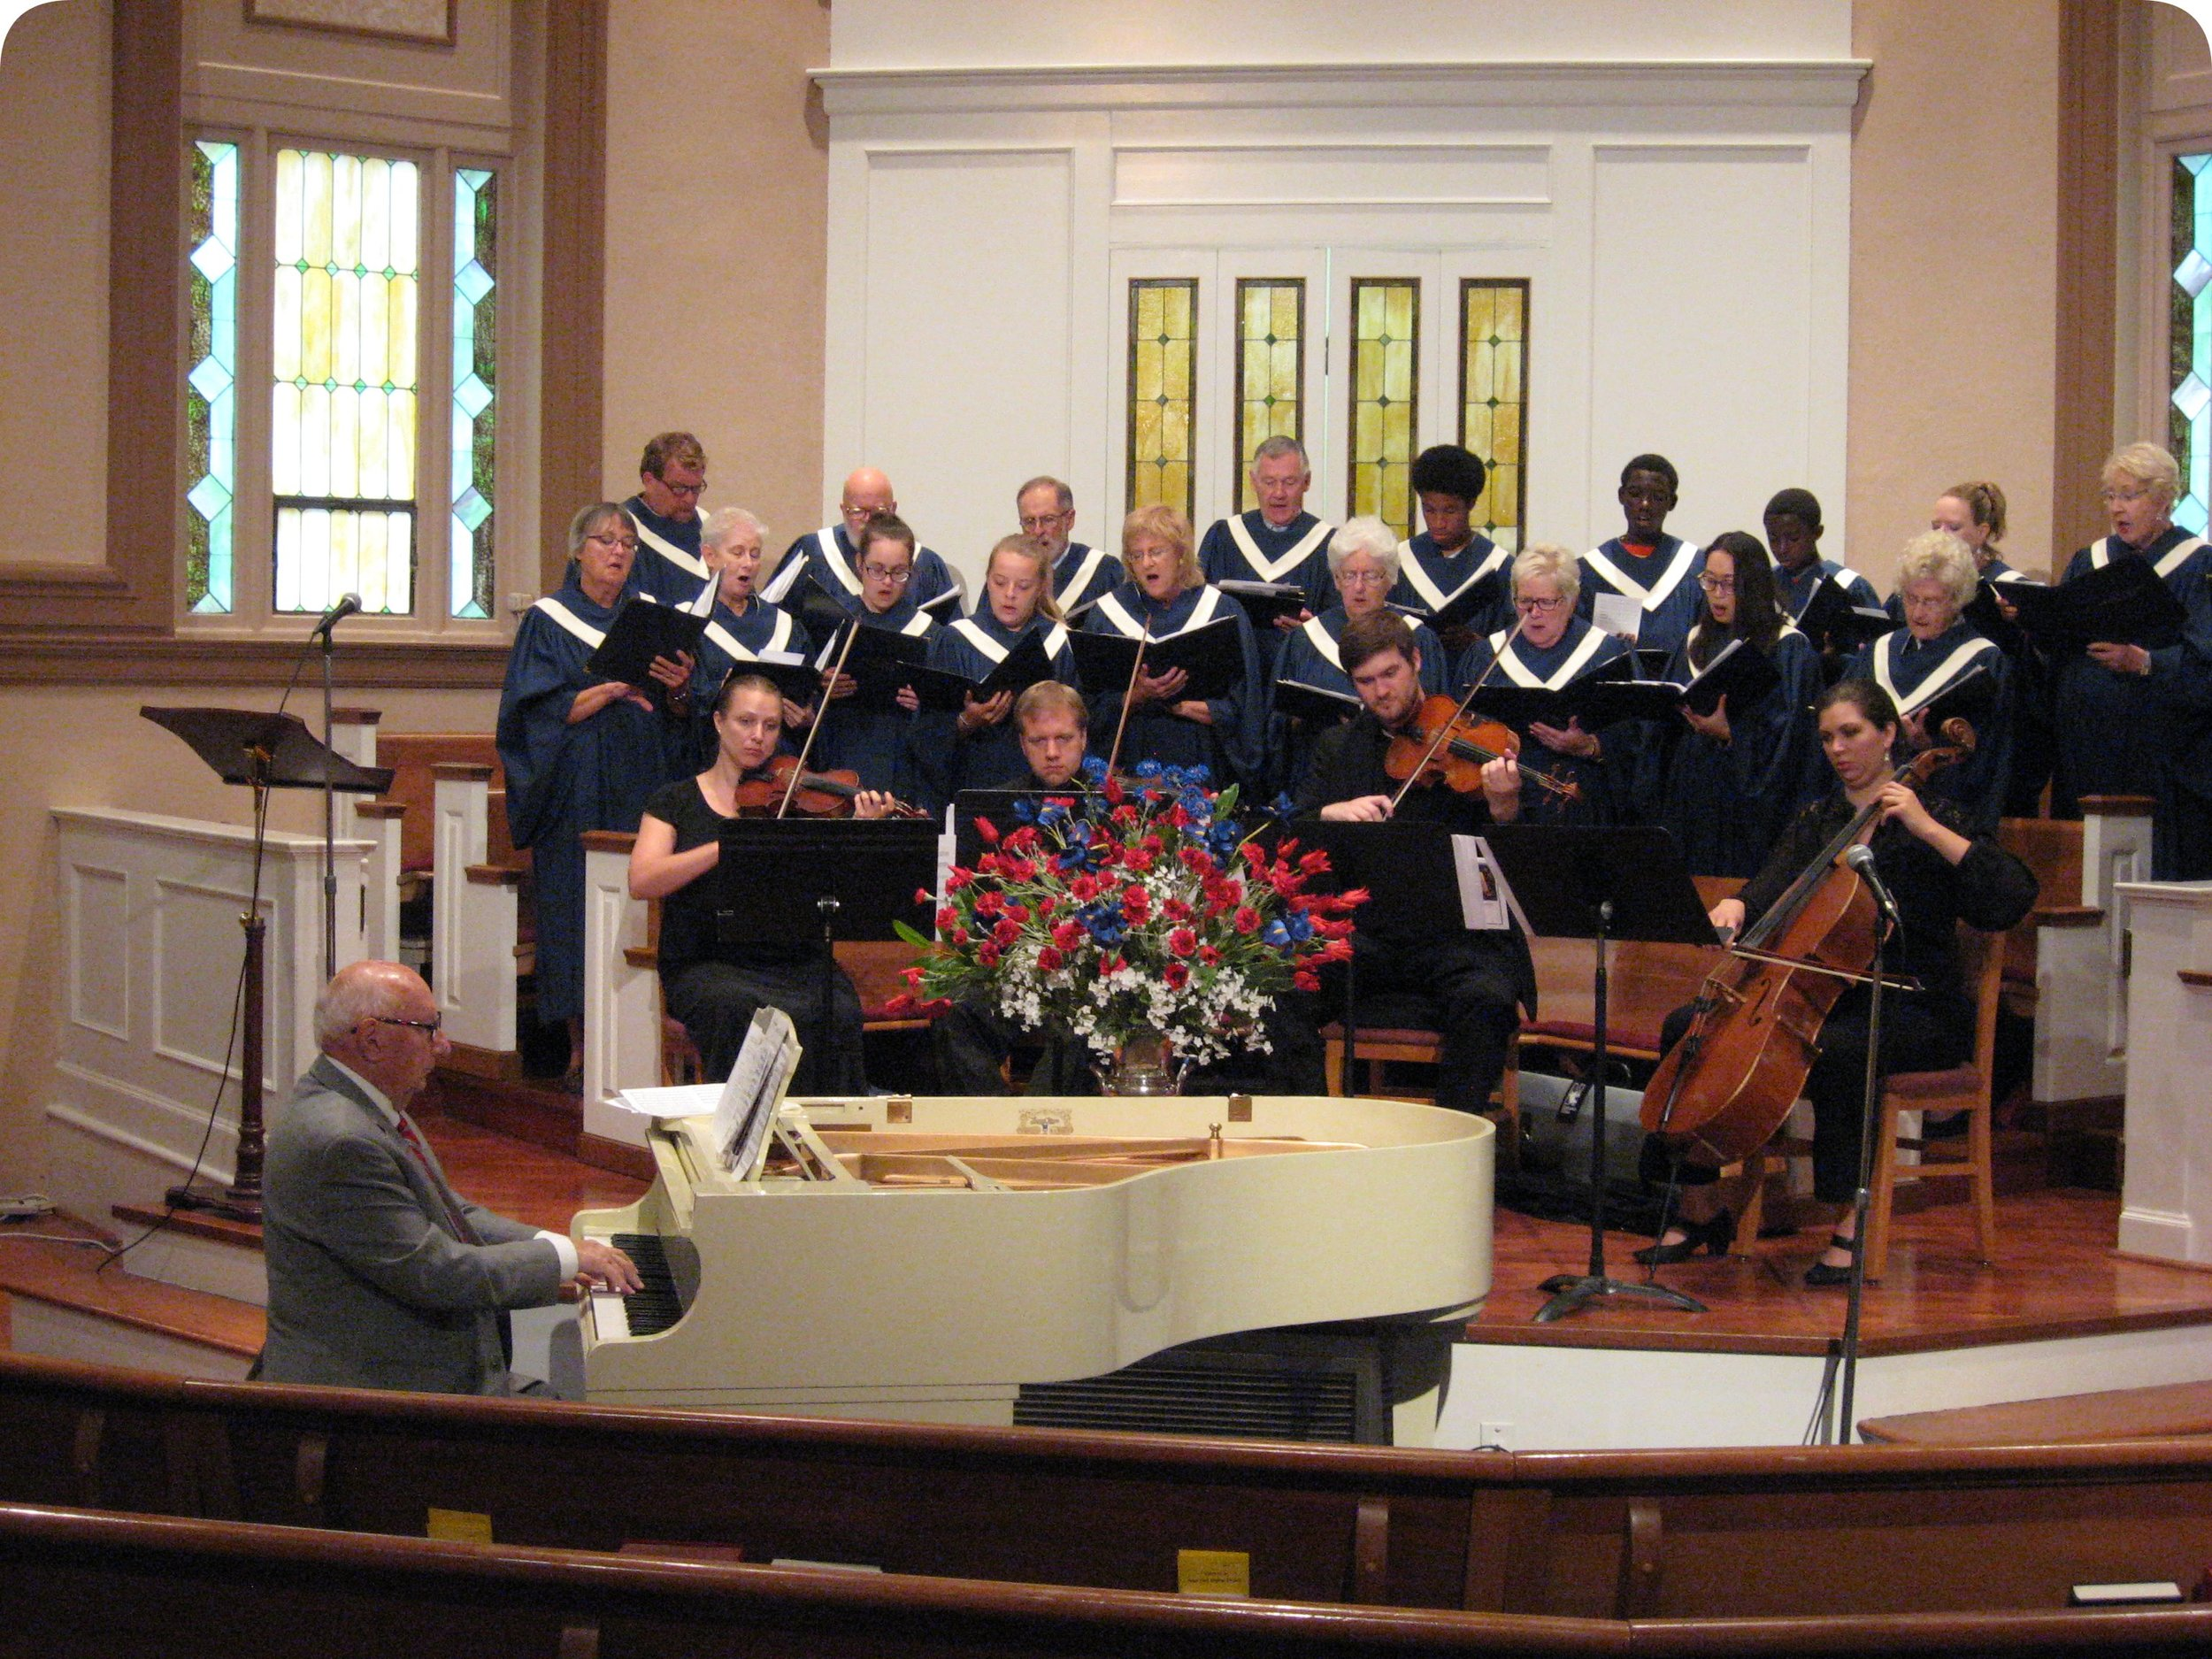 Music - The music ministry of Deer Park Baptist Church has a long, rich history, centering first on the musical needs of worship. The Chancel Choir and the organ often take the primary role in leadership during Sunday morning worship services. Worship music covers a wide gamut of styles, according to the gifts of those who participate in it.